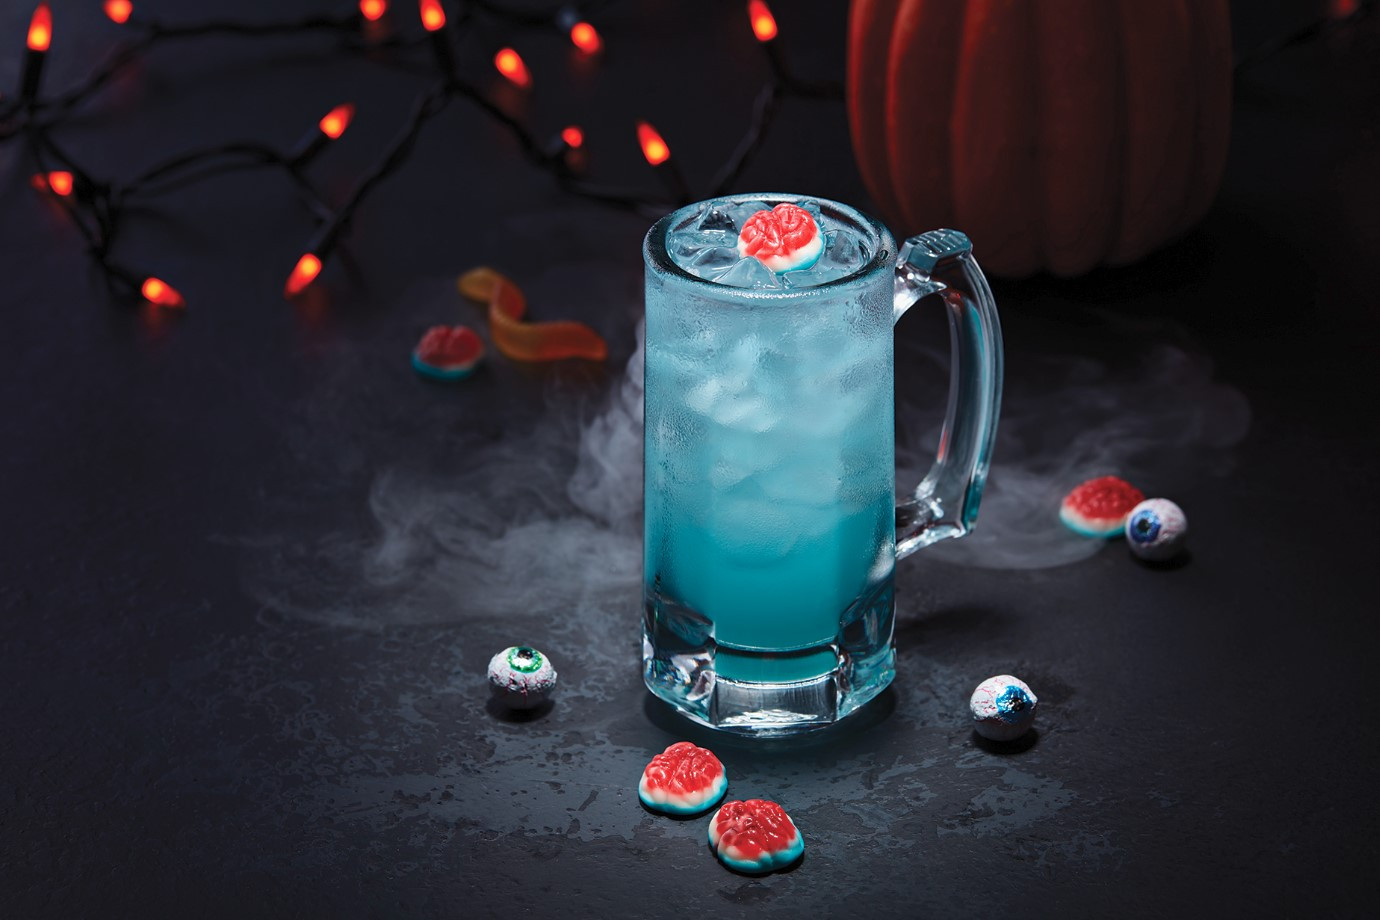 Applebees Halloween Drinks  Applebee s $2 Samuel Adams OctoberFest Month